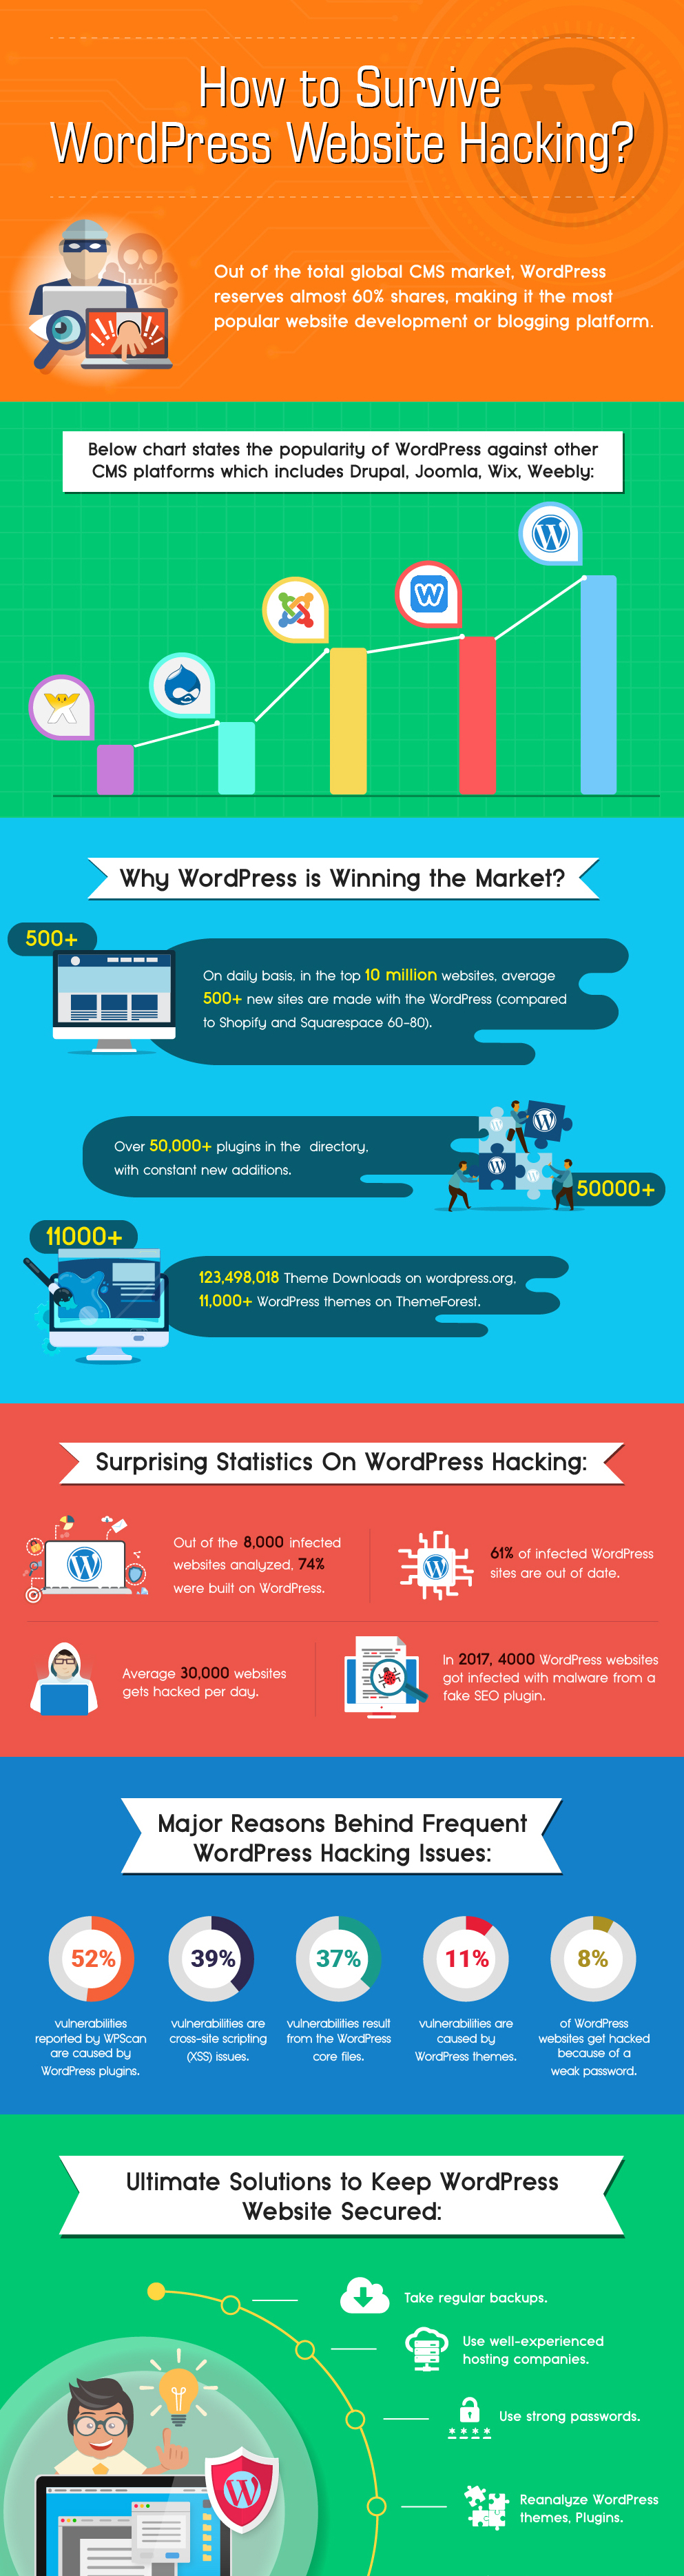 Wordpress is winning the market in terms of penetration. Yet, security is still an issue. Find solutions to keep your Wordpress website secure. All on this infographic.